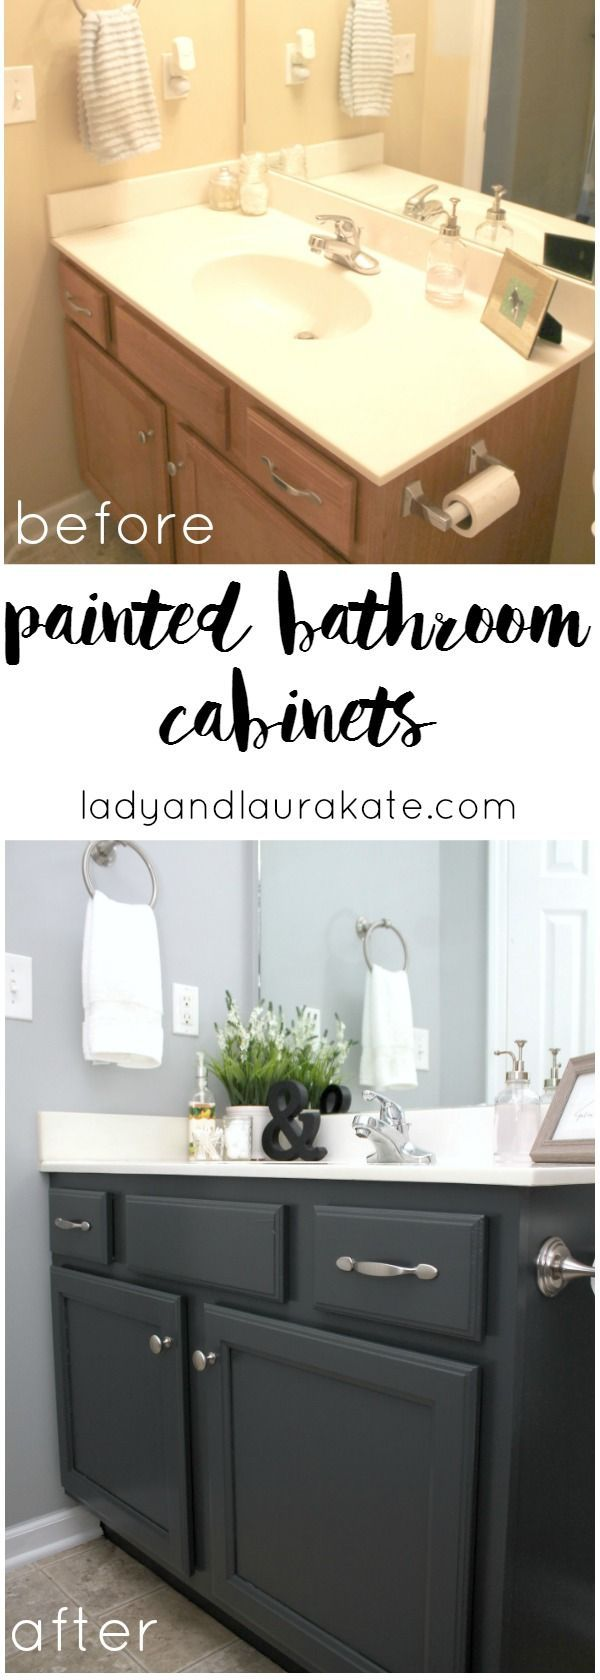 Bathroom Updates You Can Do This Weekend Bathroom Ideas - What paint to use on bathroom cabinets for bathroom decor ideas